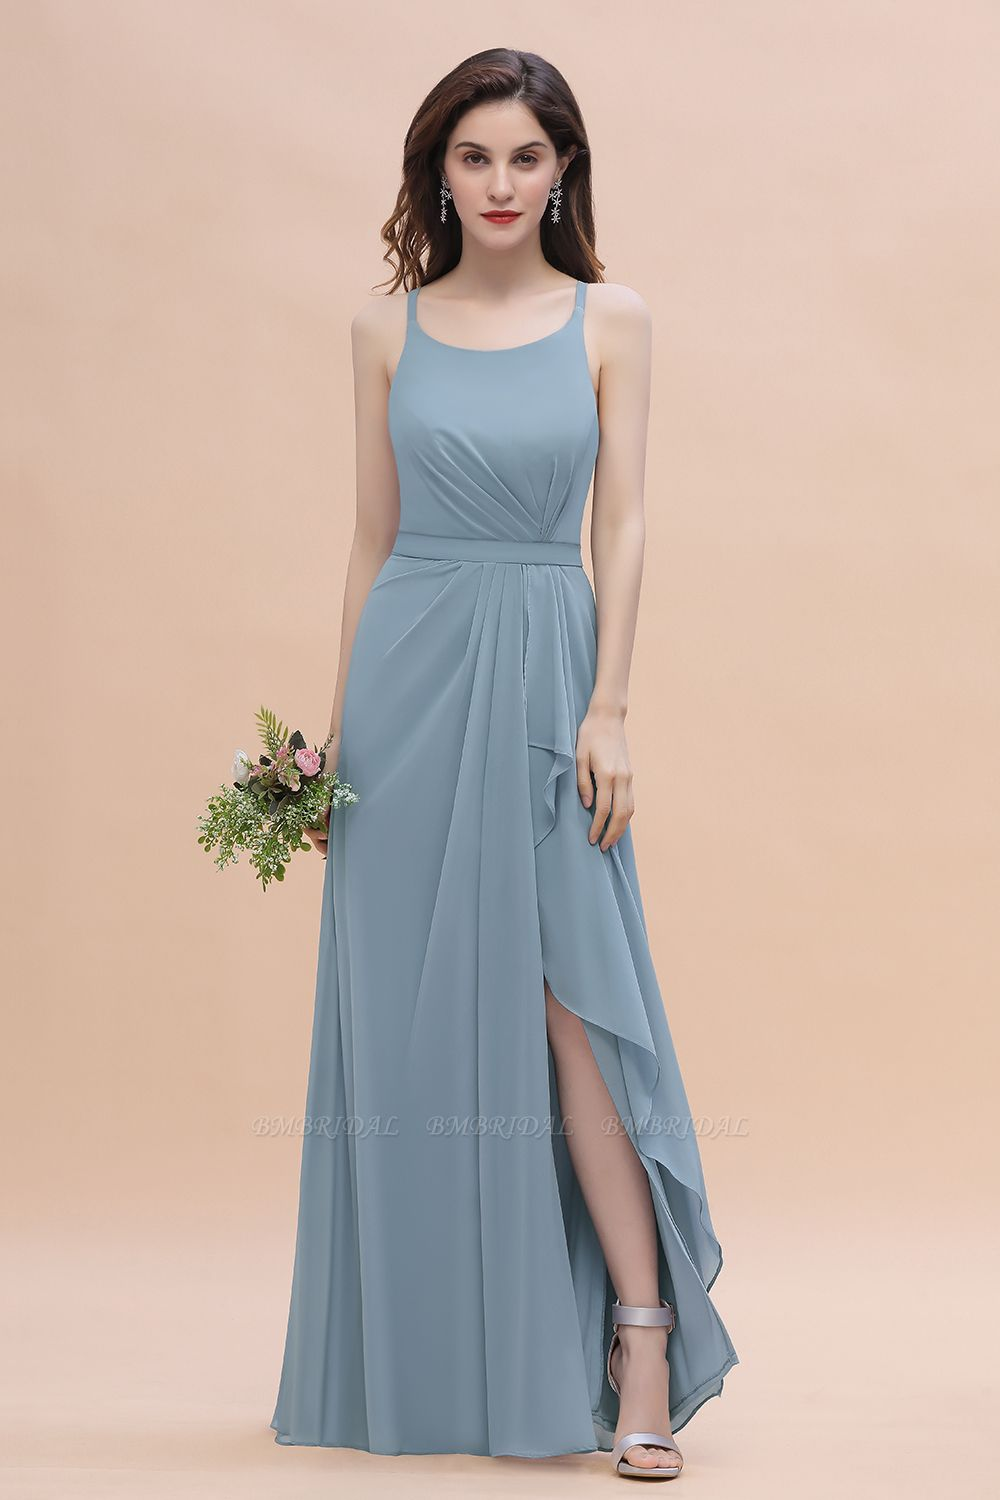 BMbridal Gorgeous A-Line Straps Dusty Blue Chiffon Bridesmaid Dress with Ruffles On Sale